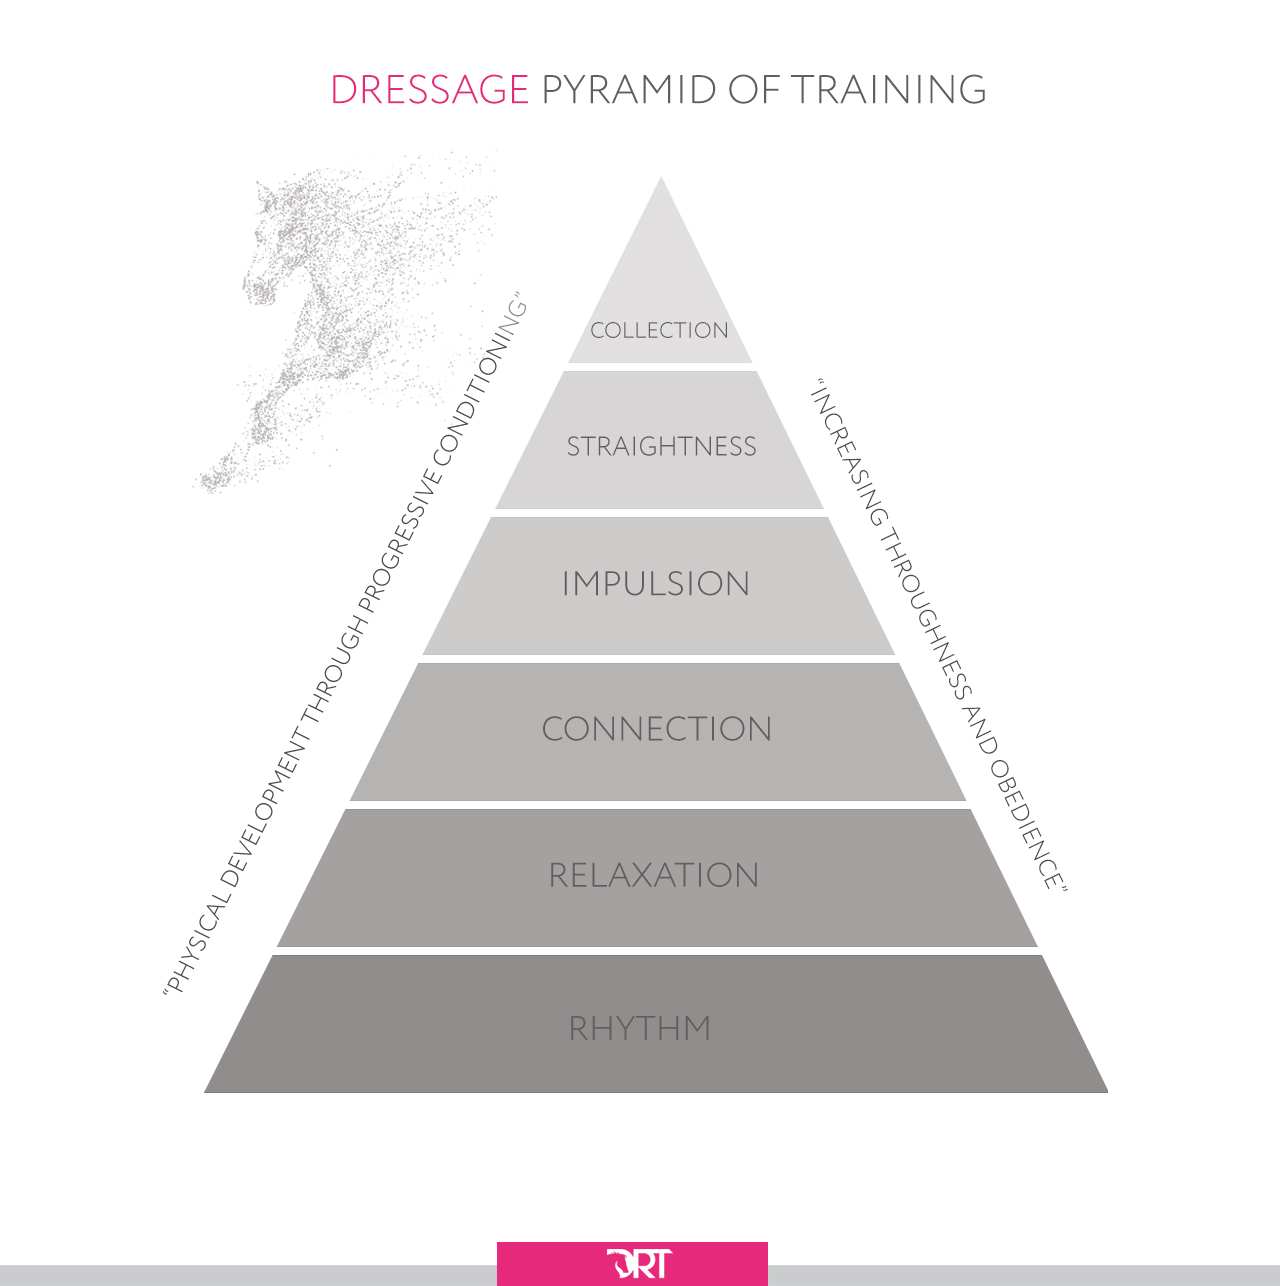 Dressage Pyramid of Training